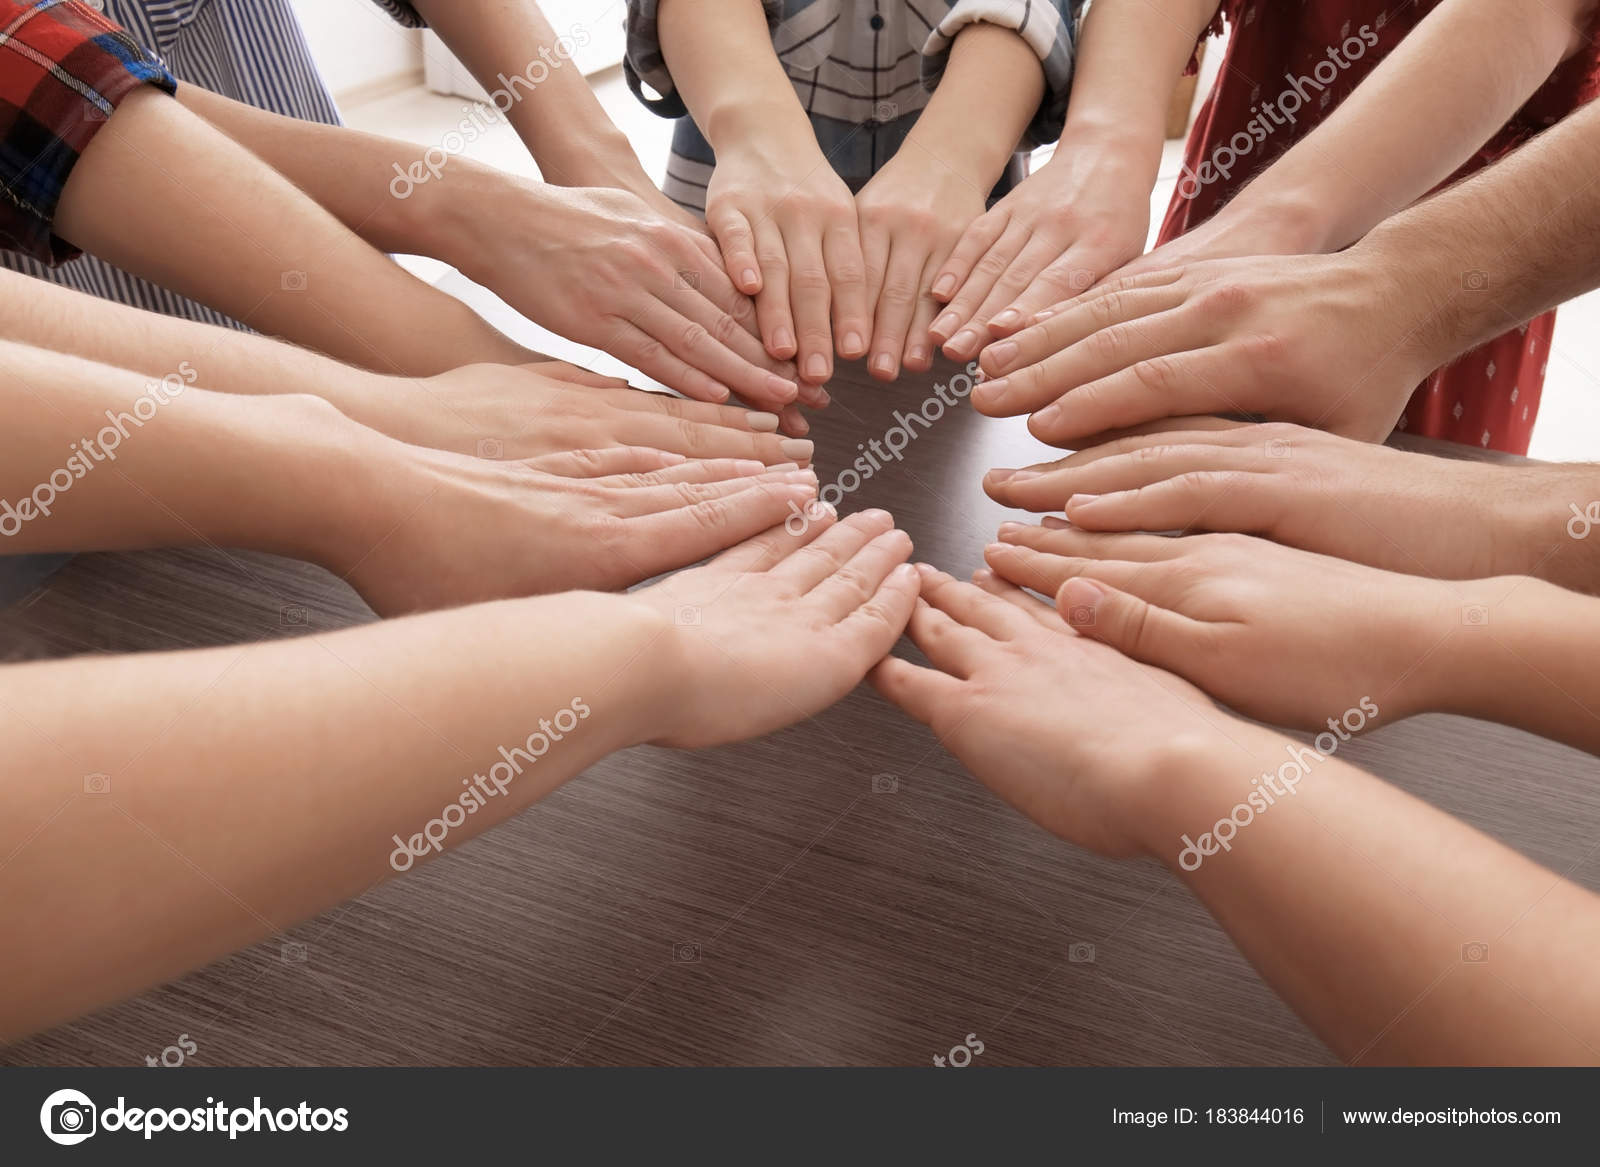 Young People Putting Hands Together In Circle As Symbol Of Unity Stock Photo C Belchonock 183844016